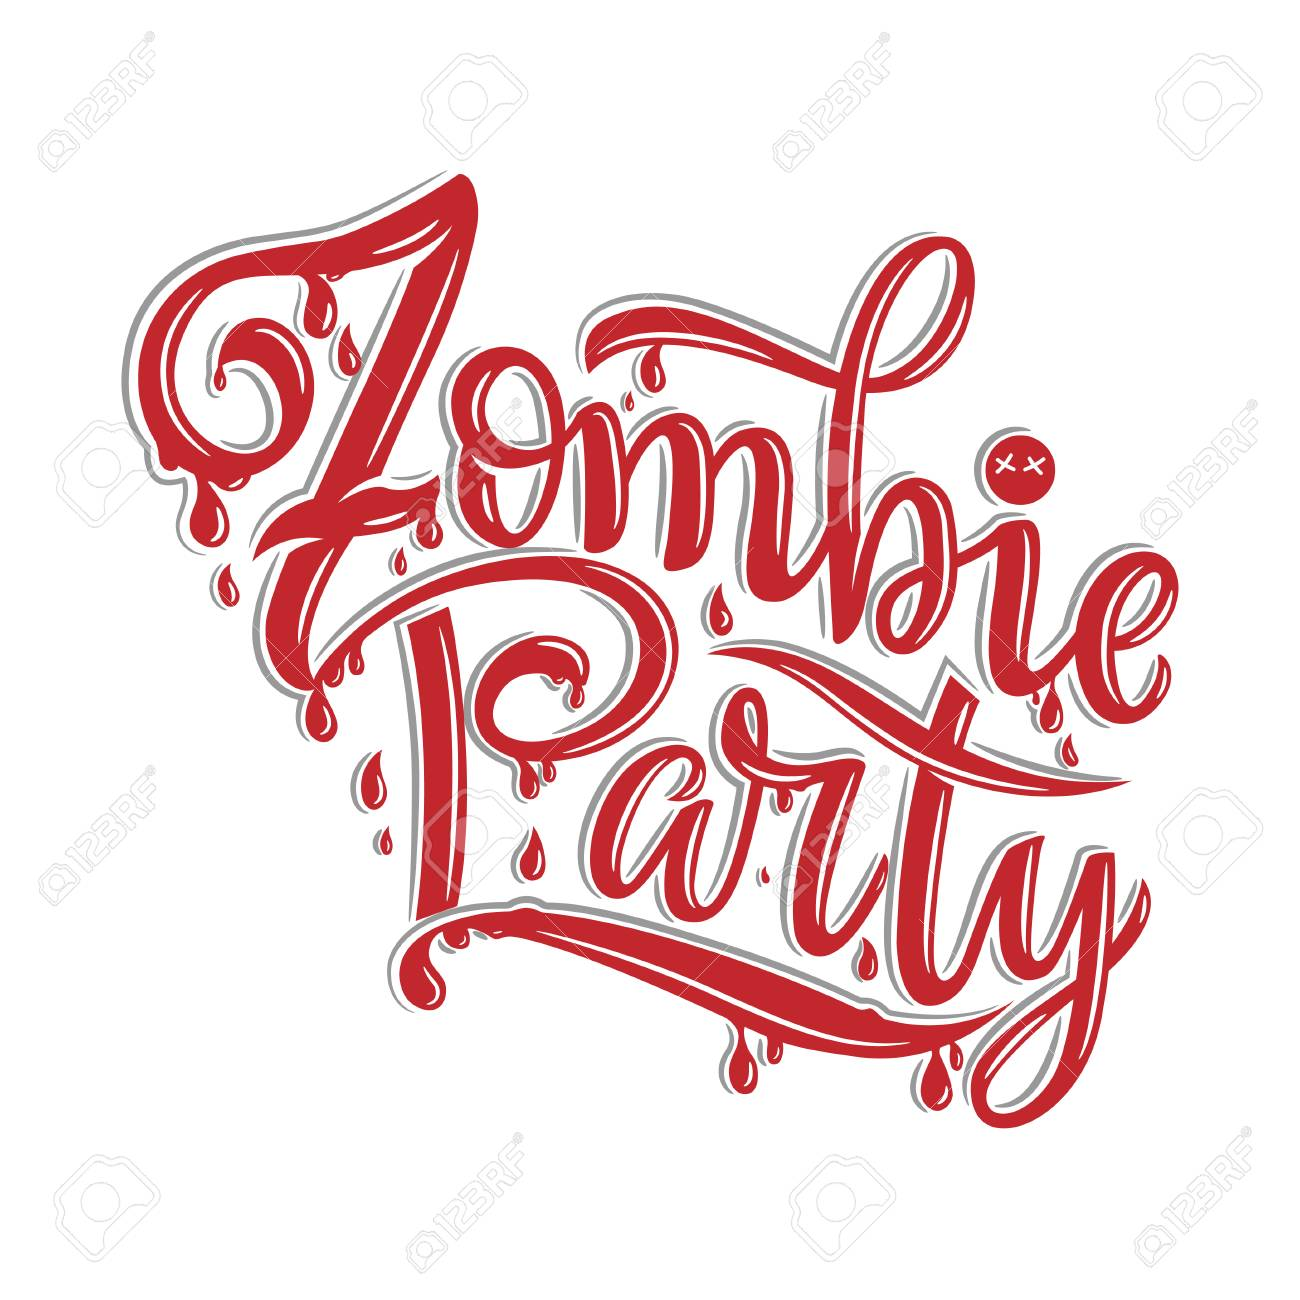 Vector Illustration Of Zombie Party Text For Party Invitation